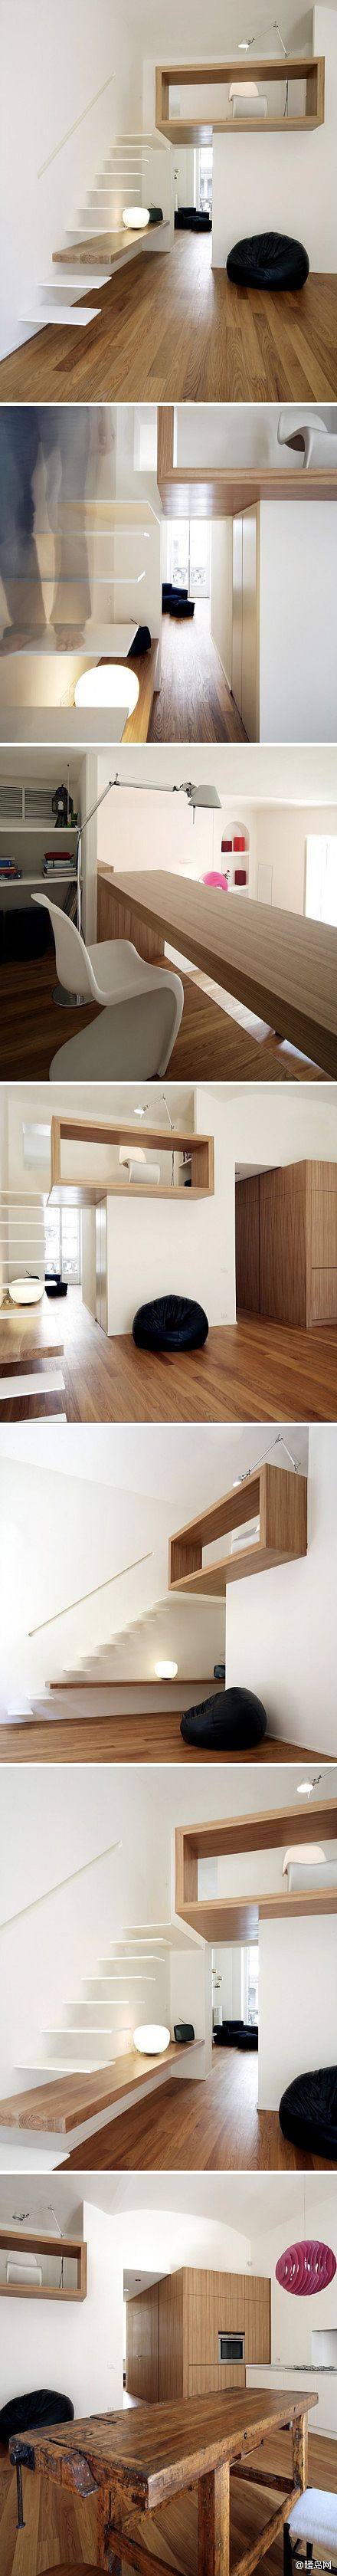 Space saving loft idea